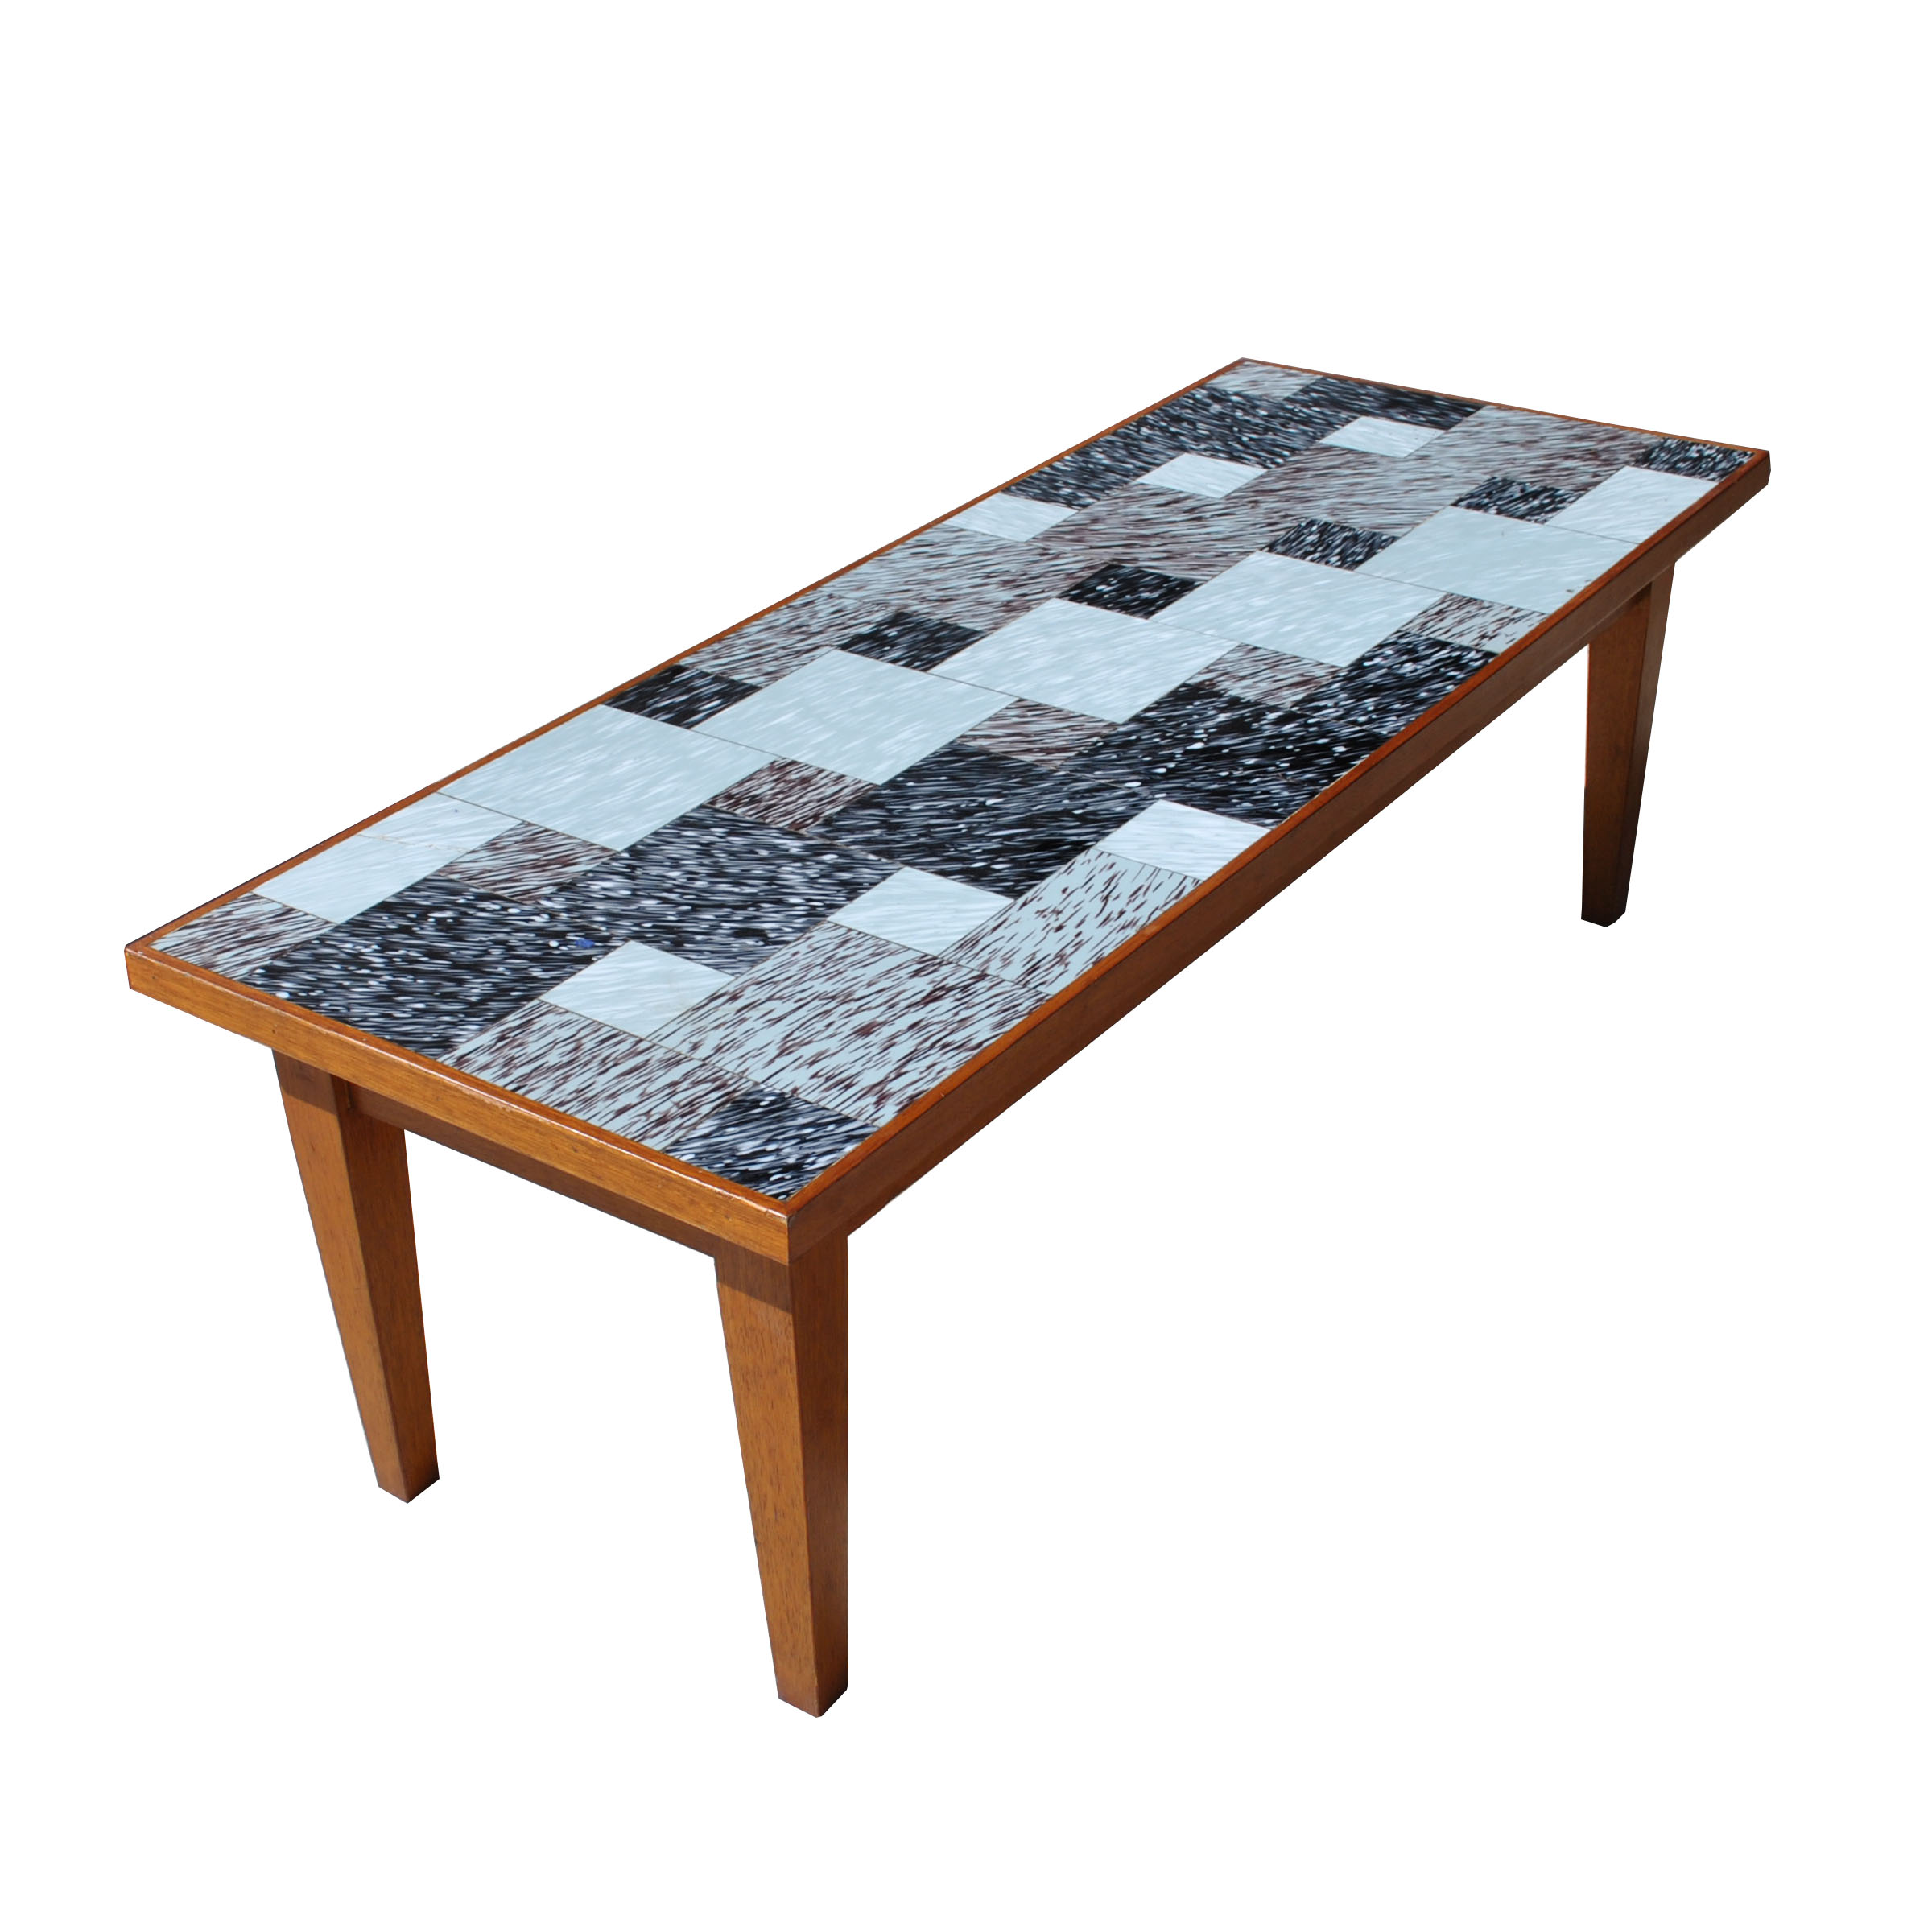 Tile Coffee Table Set: MidCentury Retro Style Modern Architectural Vintage